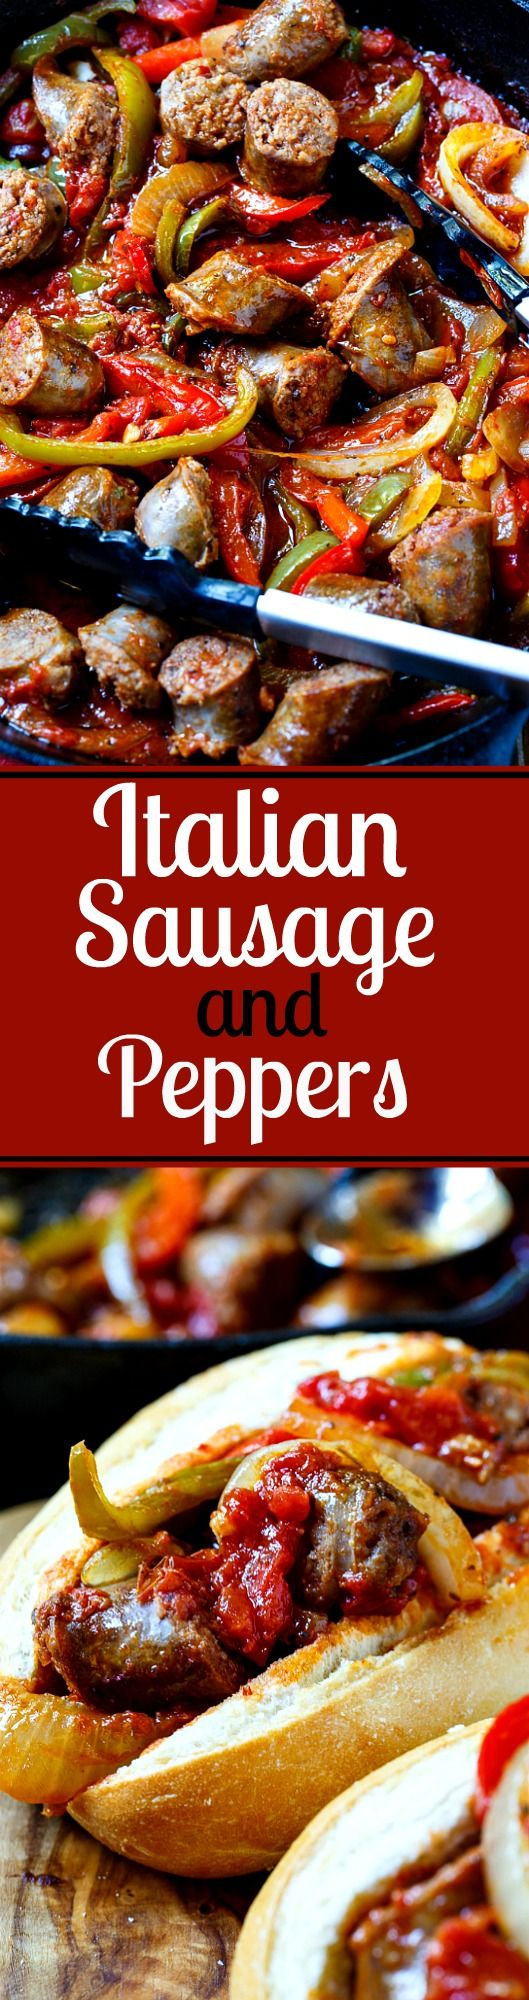 Italian Sausage and Peppers makes an easy weeknight meal! | Posted by: DebbieNet.com